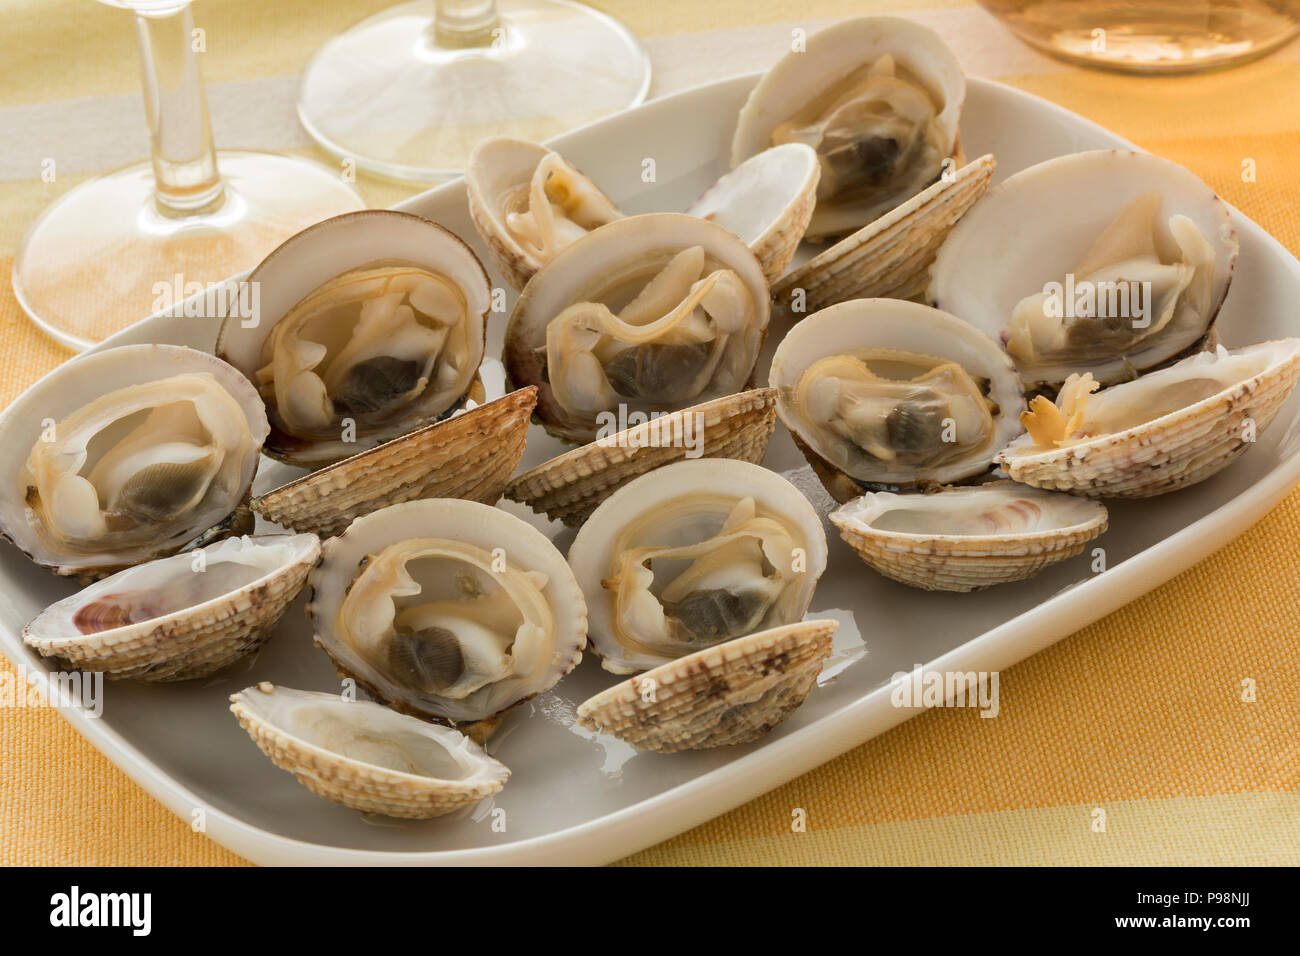 Dish with fresh cooked open warty venus clams for a meal - Stock Image